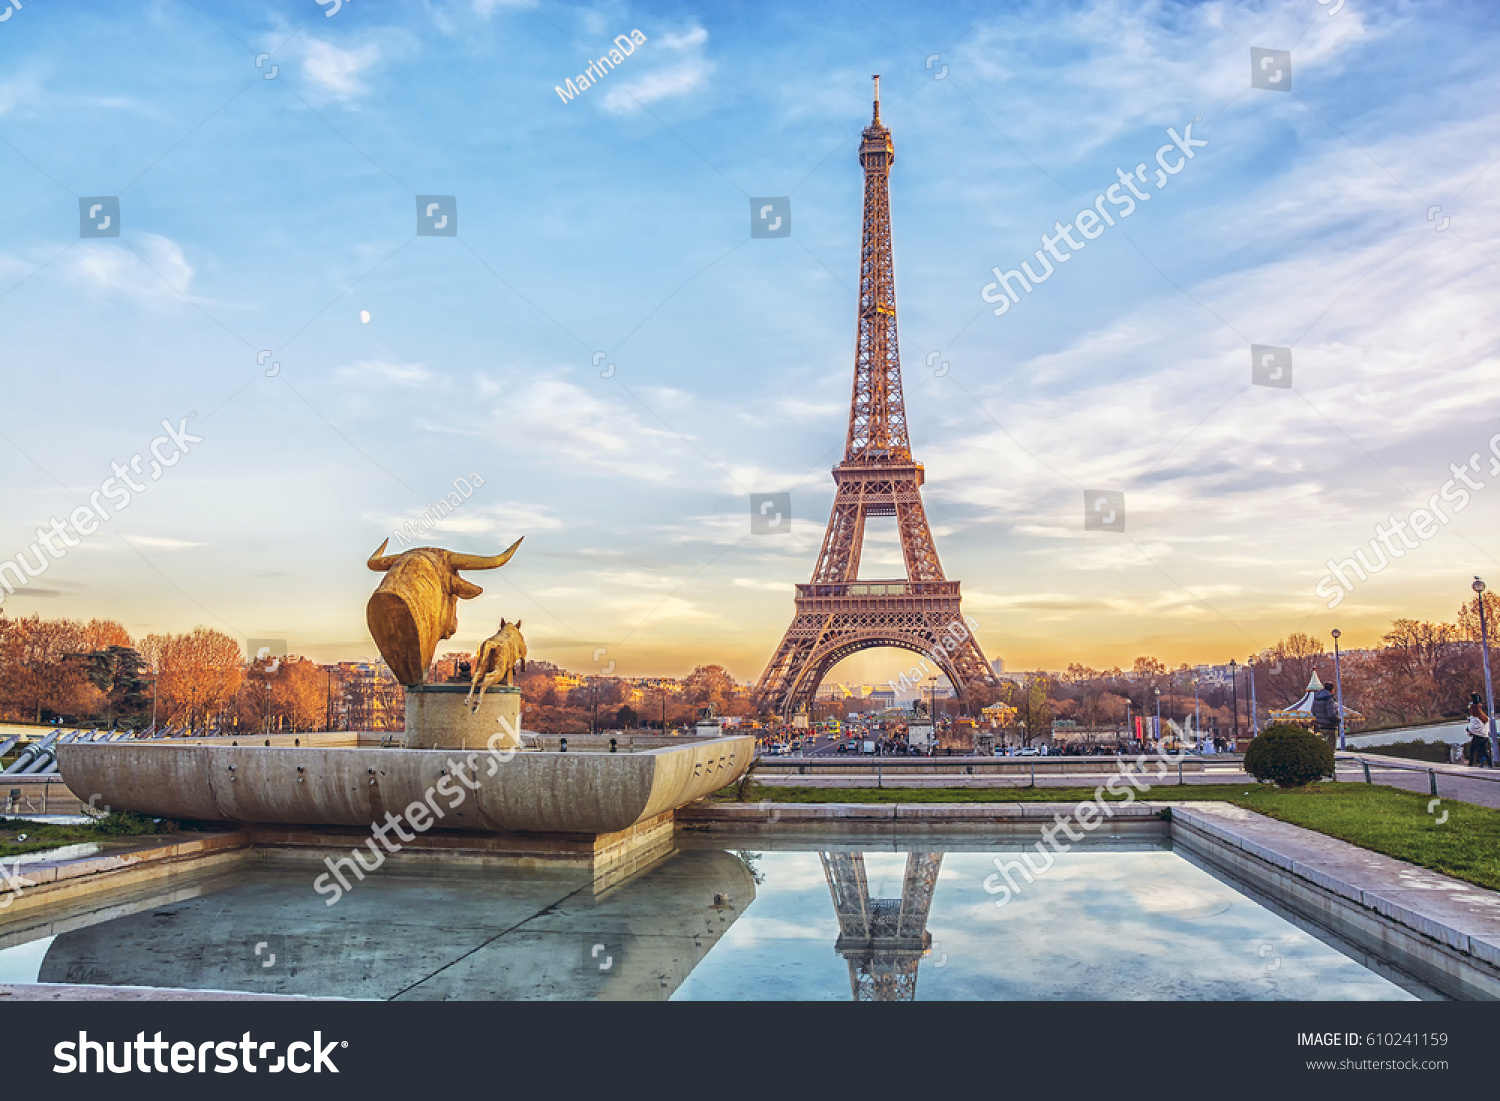 Outdoor cafe in paris with tower in background - Eiffel Tower At Sunset In Paris France Romantic Travel Background